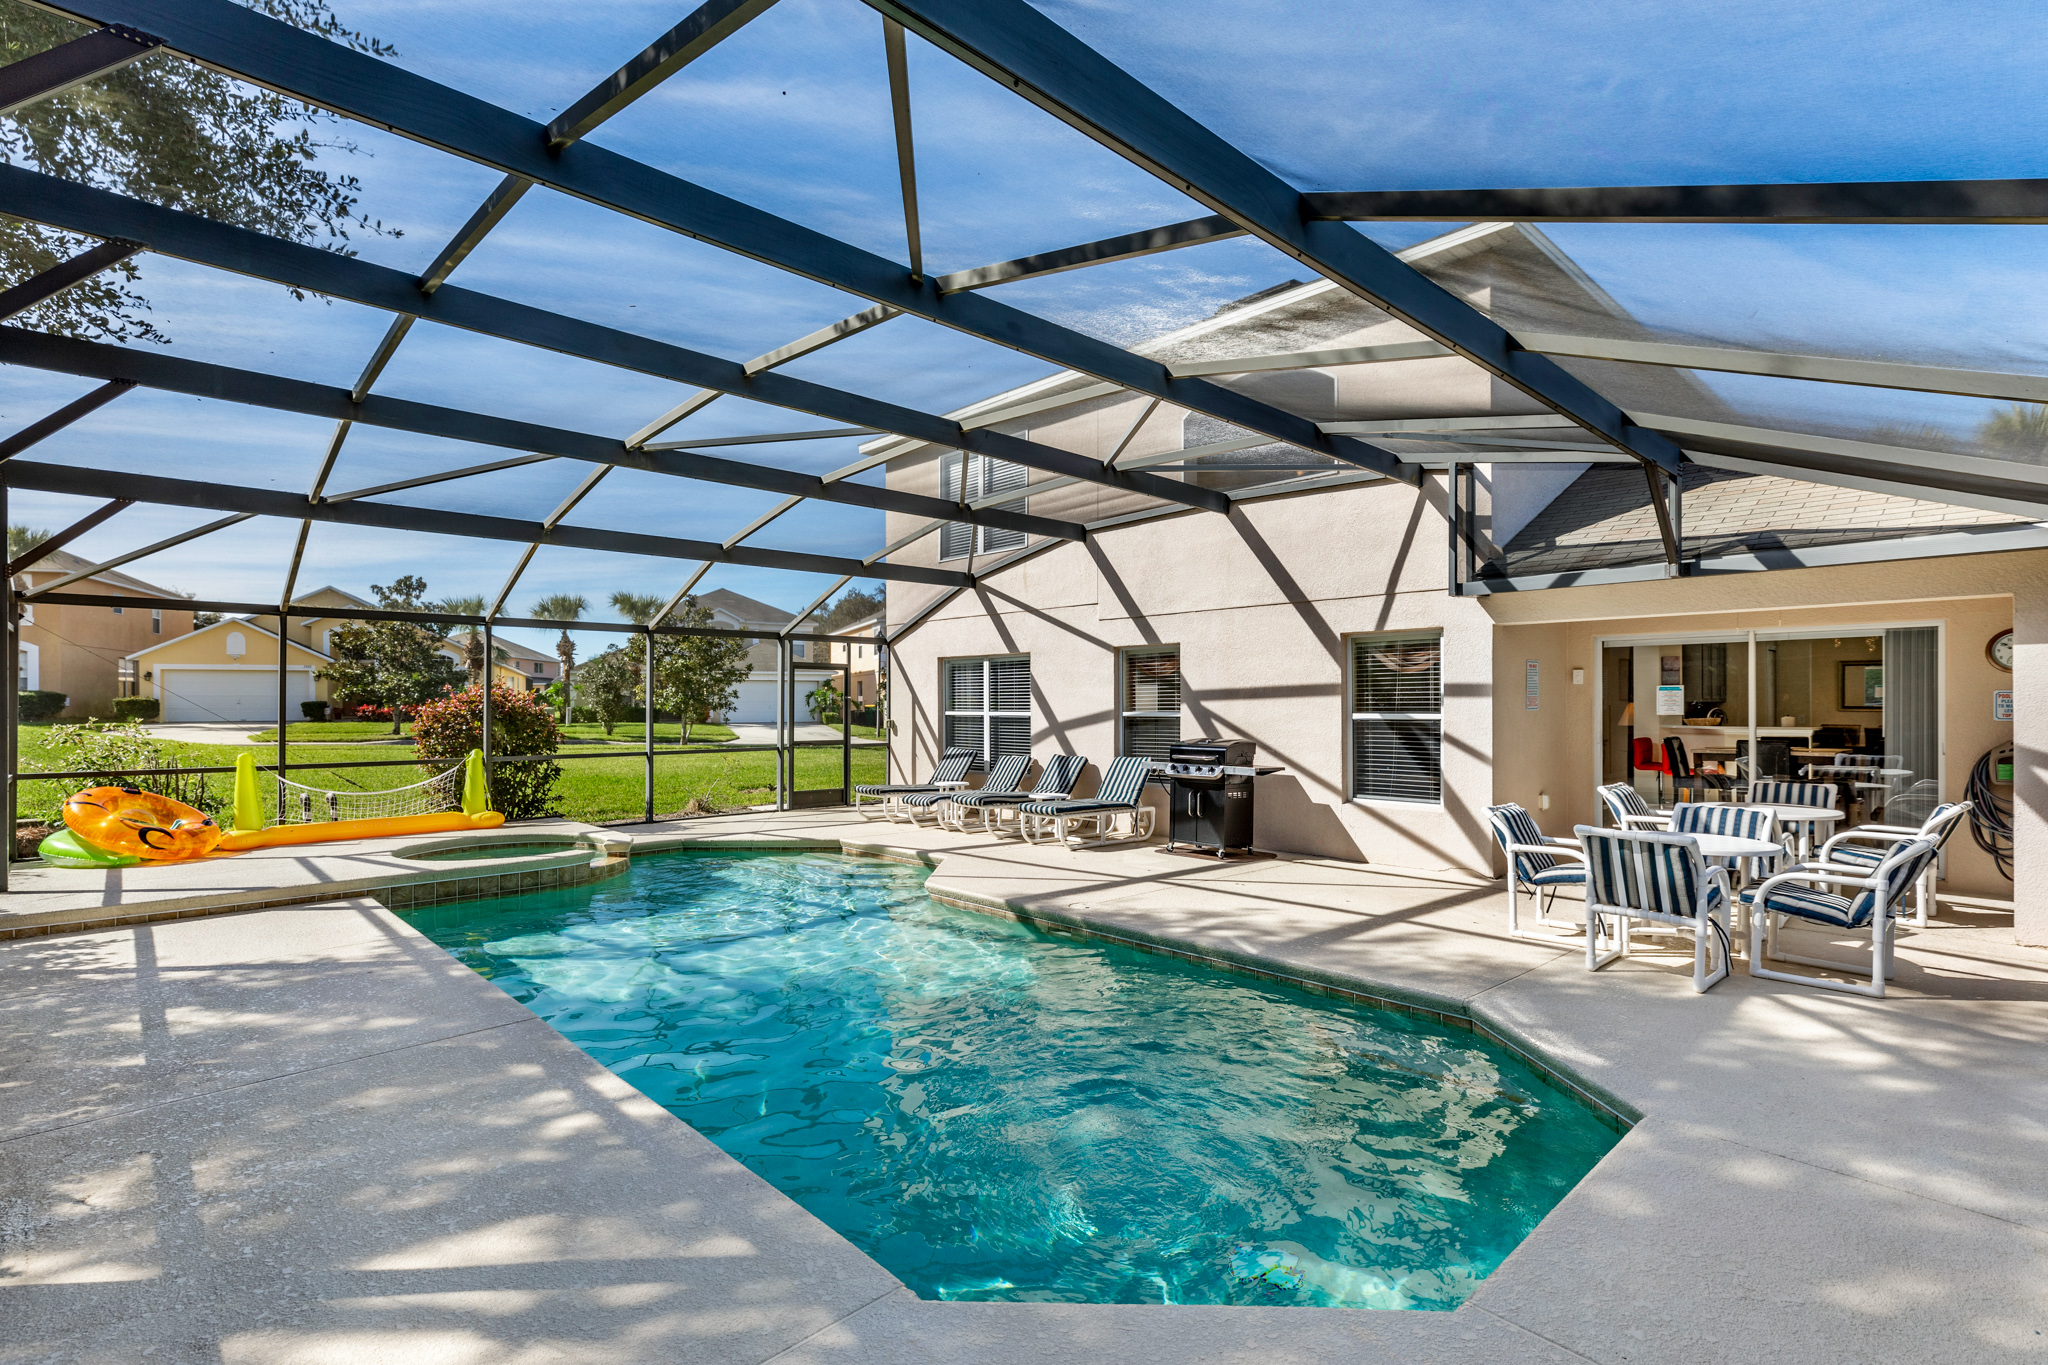 Perfect Home - Perfect Location!-128805